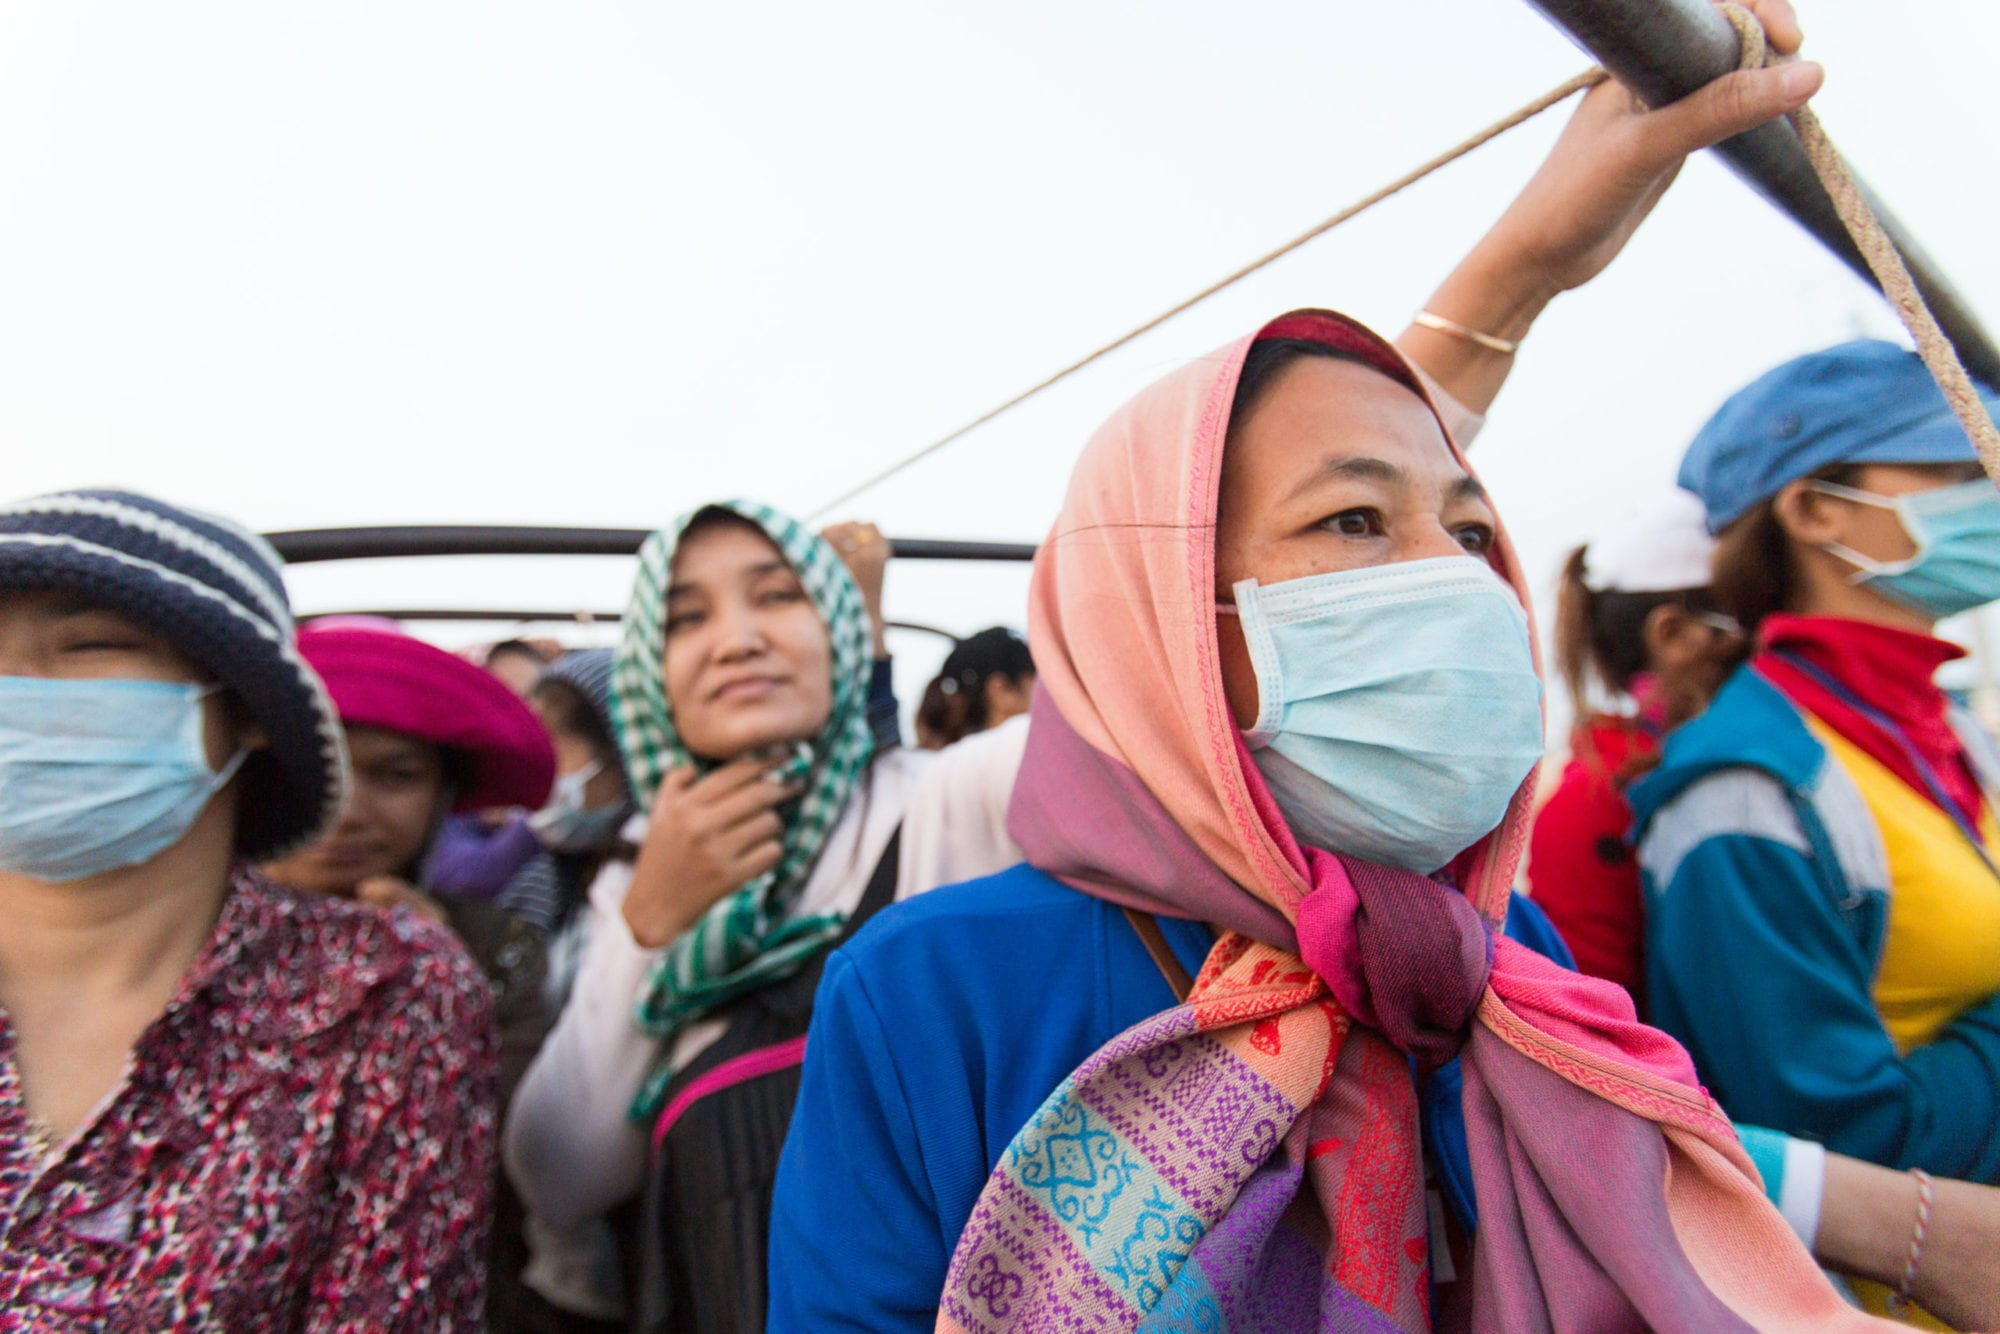 Cambodia, garment workers traveling in open truck to work, Solidarity Center, worker rights, human rights